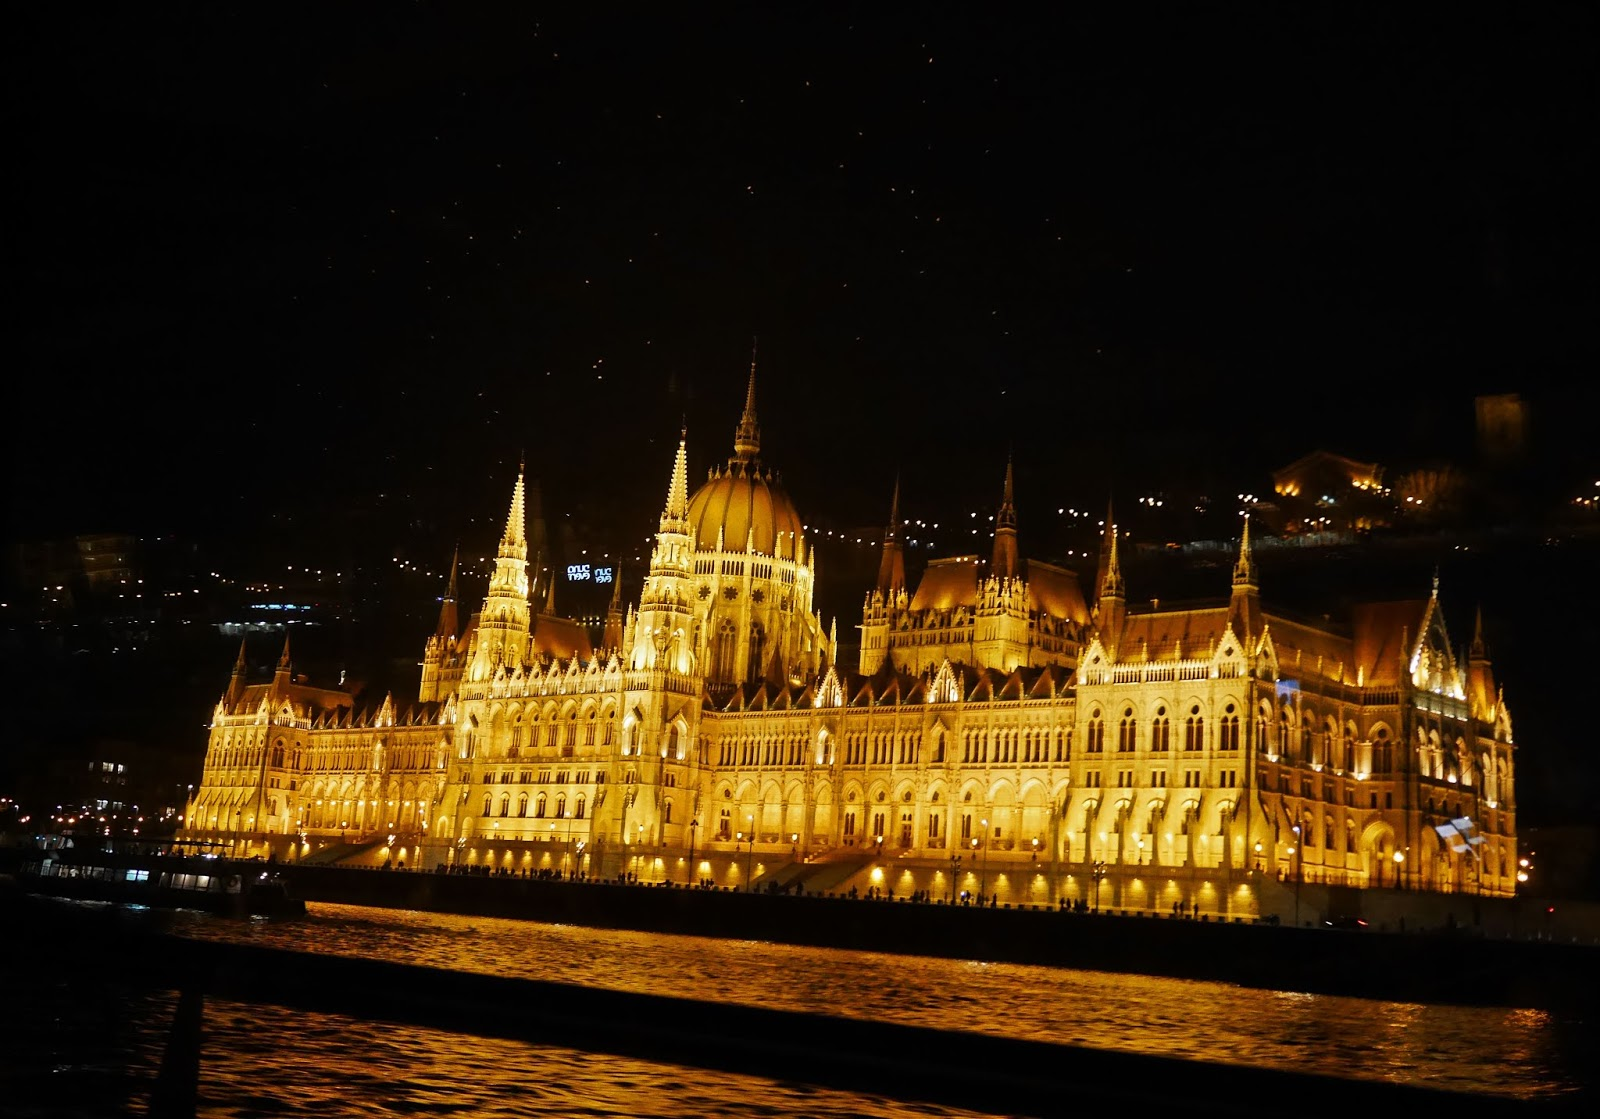 Nighttime view of the Parliament Building from our boat on the Danube, Budapest